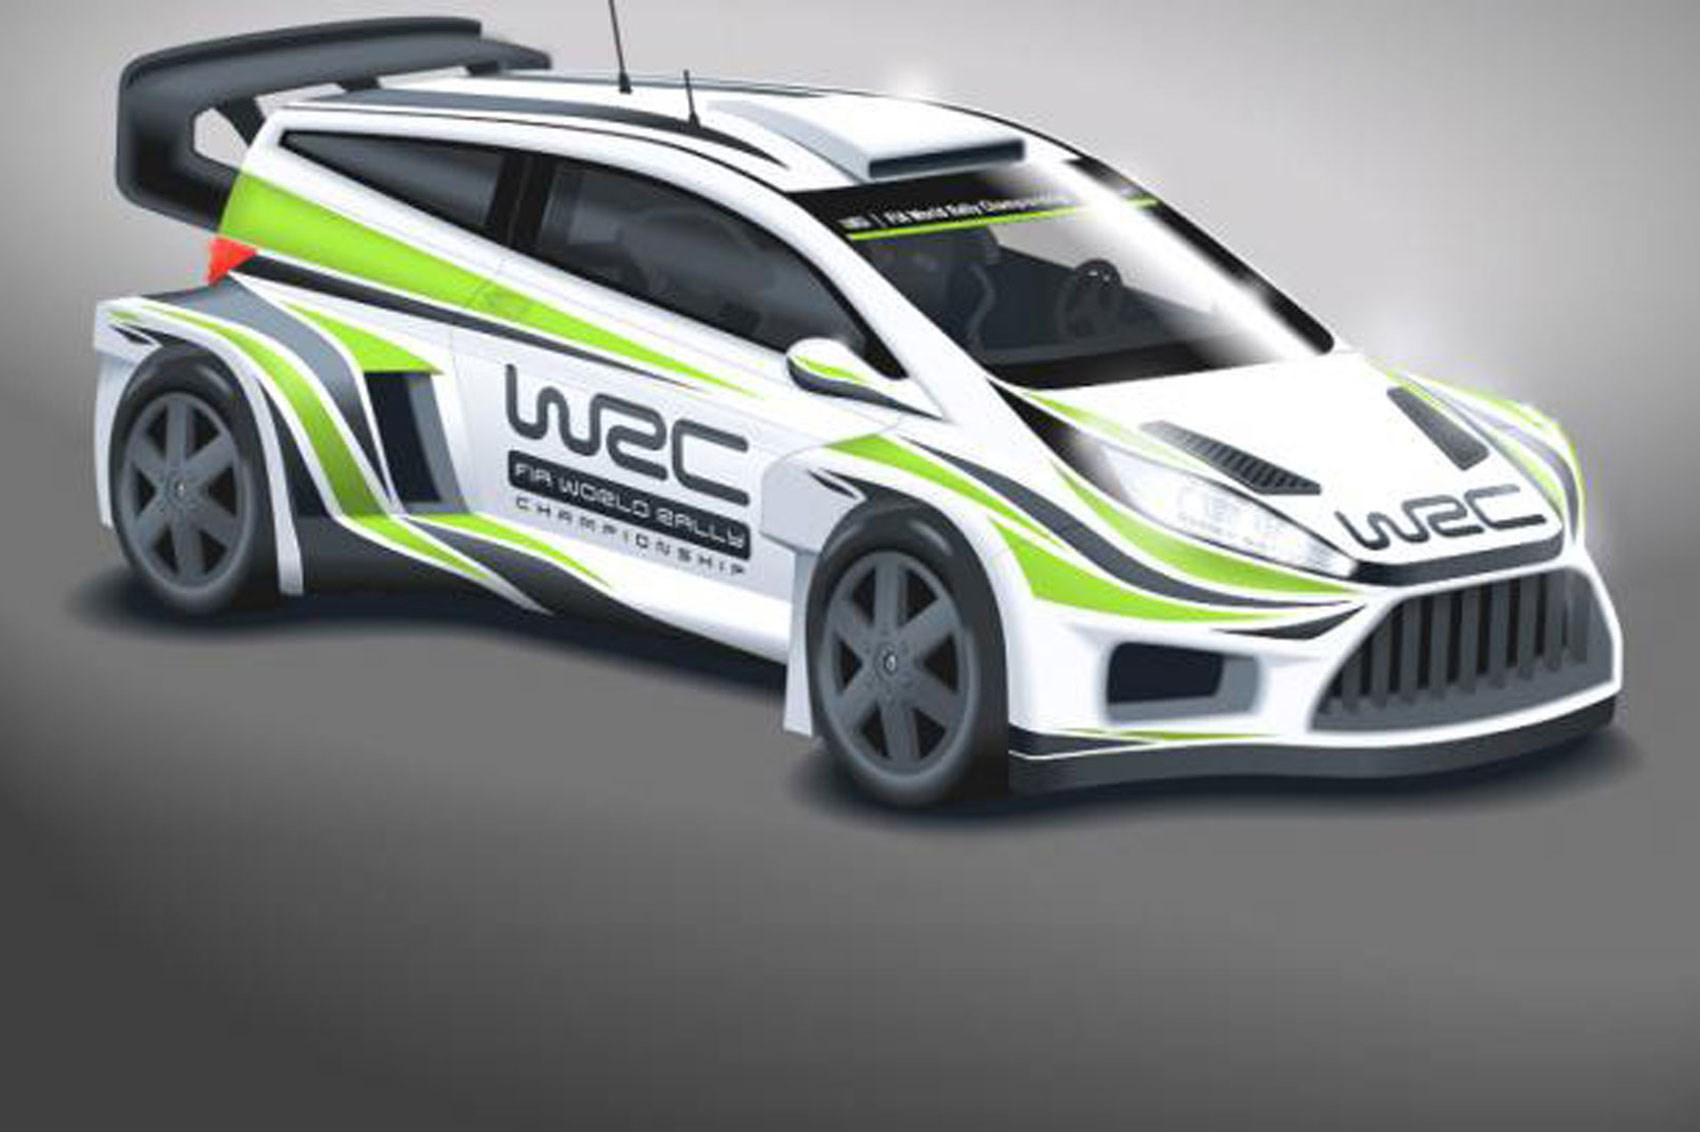 Ultrablogus  Unusual Wild New Look For Wrc Cars In  By Car Magazine With Licious Wrc Cars Will Get Wider Bodies Bigger Wings And More Power For  With Awesome Dc Type R Interior Also Bmw I Interior In Addition Mg Zr Interior Styling And Interior Jeep Cherokee As Well As Honda Jazz Interior  Additionally Jaguar Interior Pics From Carmagazinecouk With Ultrablogus  Licious Wild New Look For Wrc Cars In  By Car Magazine With Awesome Wrc Cars Will Get Wider Bodies Bigger Wings And More Power For  And Unusual Dc Type R Interior Also Bmw I Interior In Addition Mg Zr Interior Styling From Carmagazinecouk